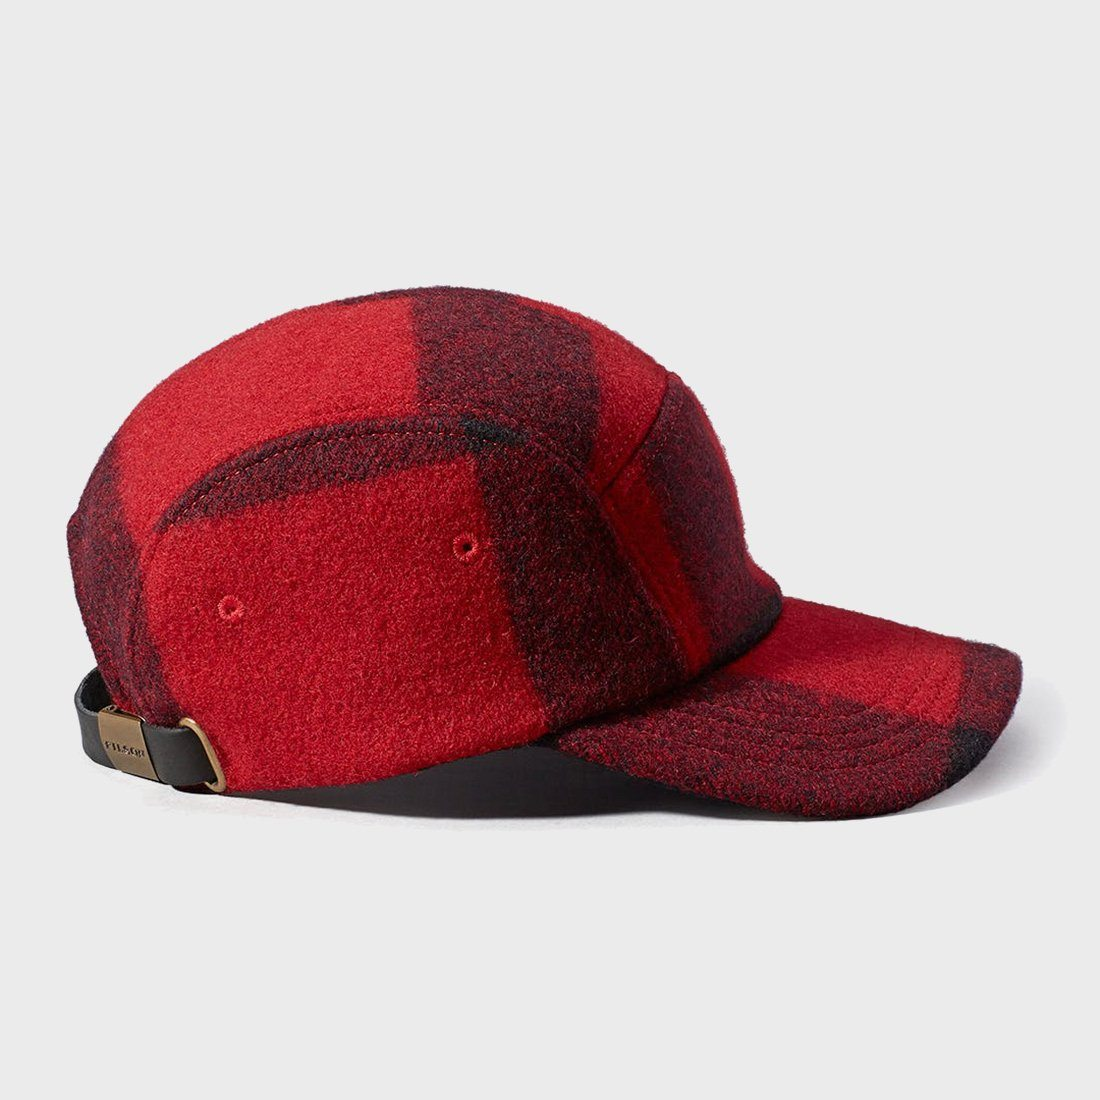 6bf3af695f5a6 ... product  Filson 5 Panel Cap Red Black